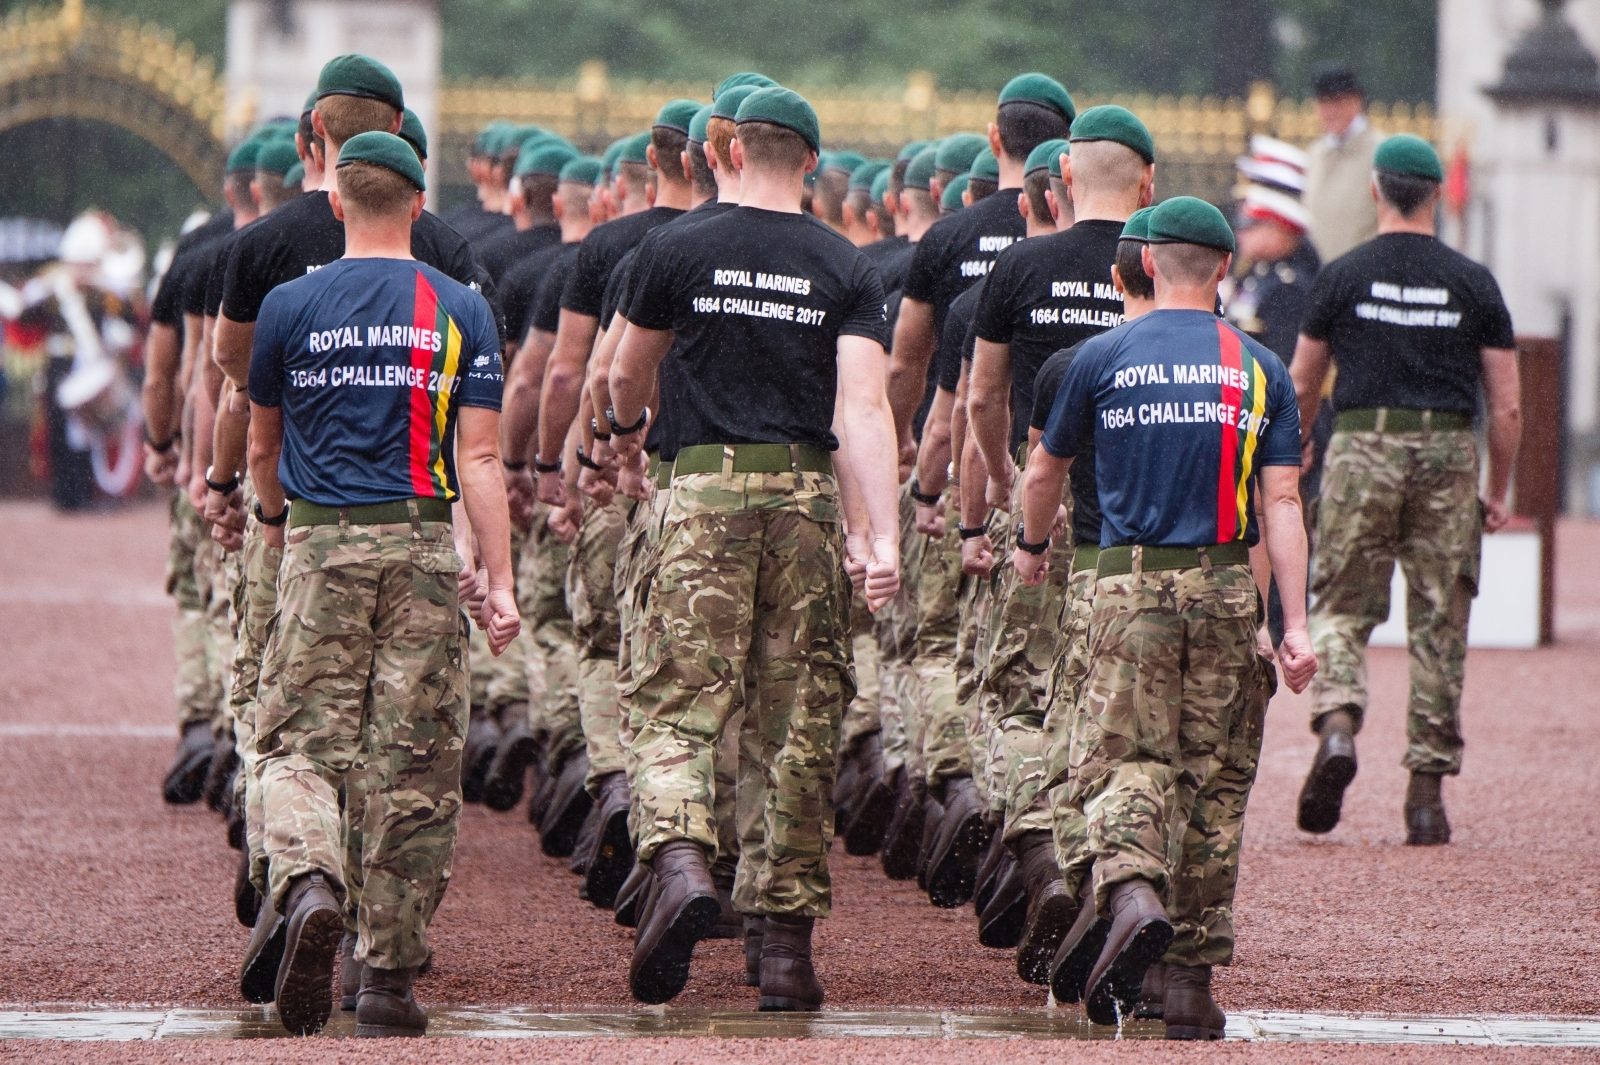 Royal Marine corporals forced soldiers to masturbate to gay porn and hung them upside down for failing to carry out routine tasks, a court martial heard